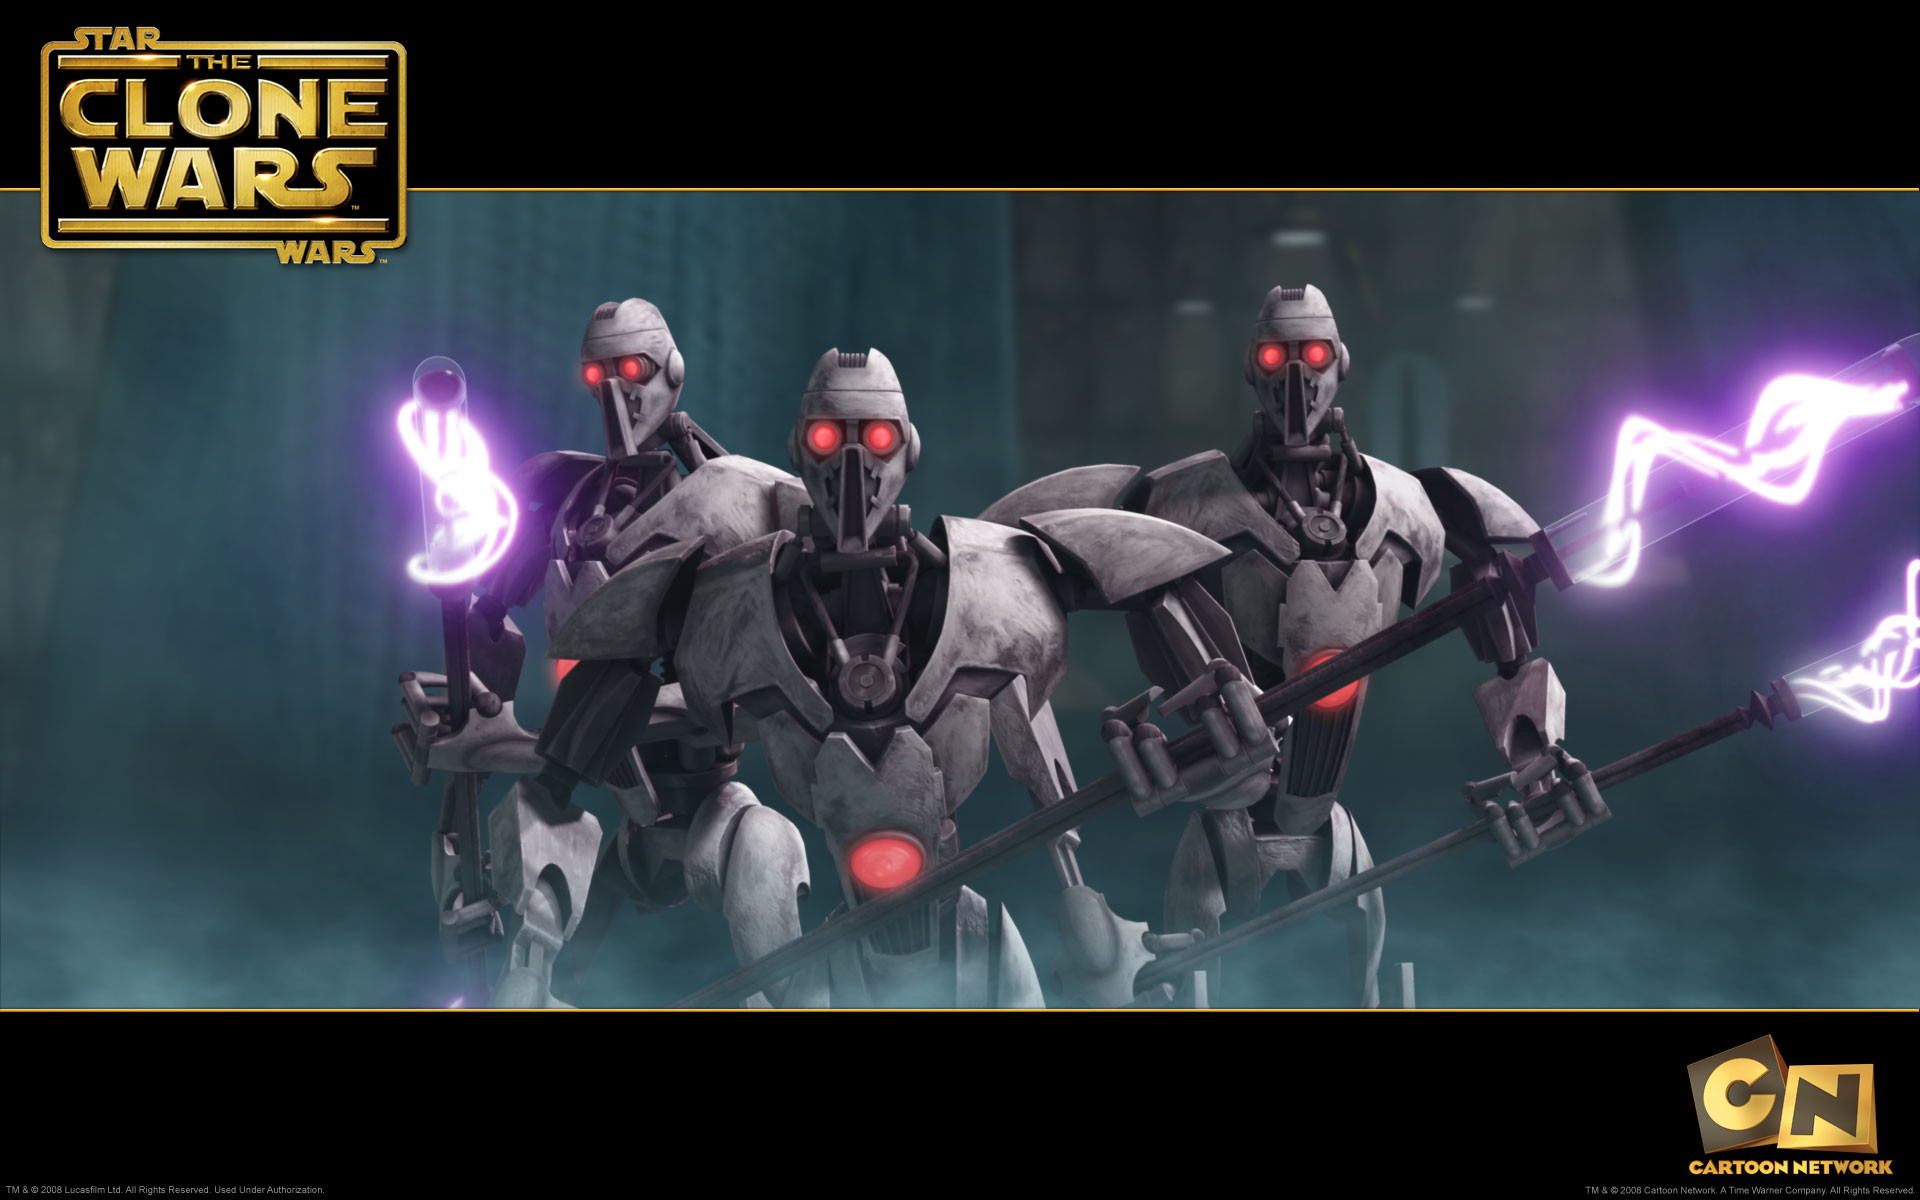 192 1928075 1920x1200 star wars star wars the clone wars